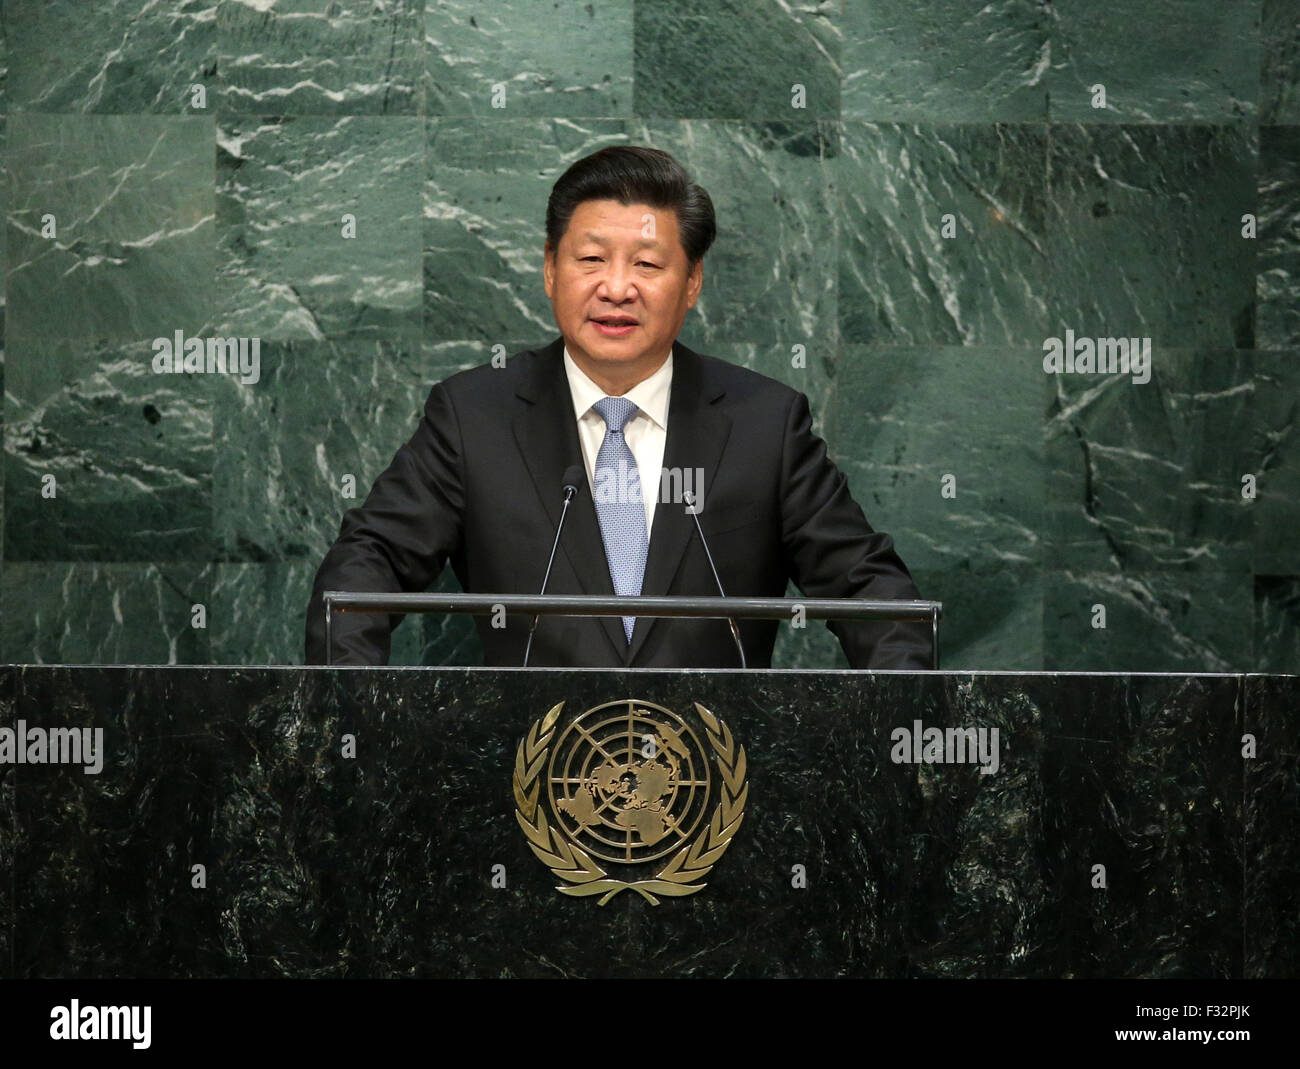 New York, USA. 28th Sep, 2015. Chinese President Xi Jinping addresses the annual high-level general debate of the - Stock Image